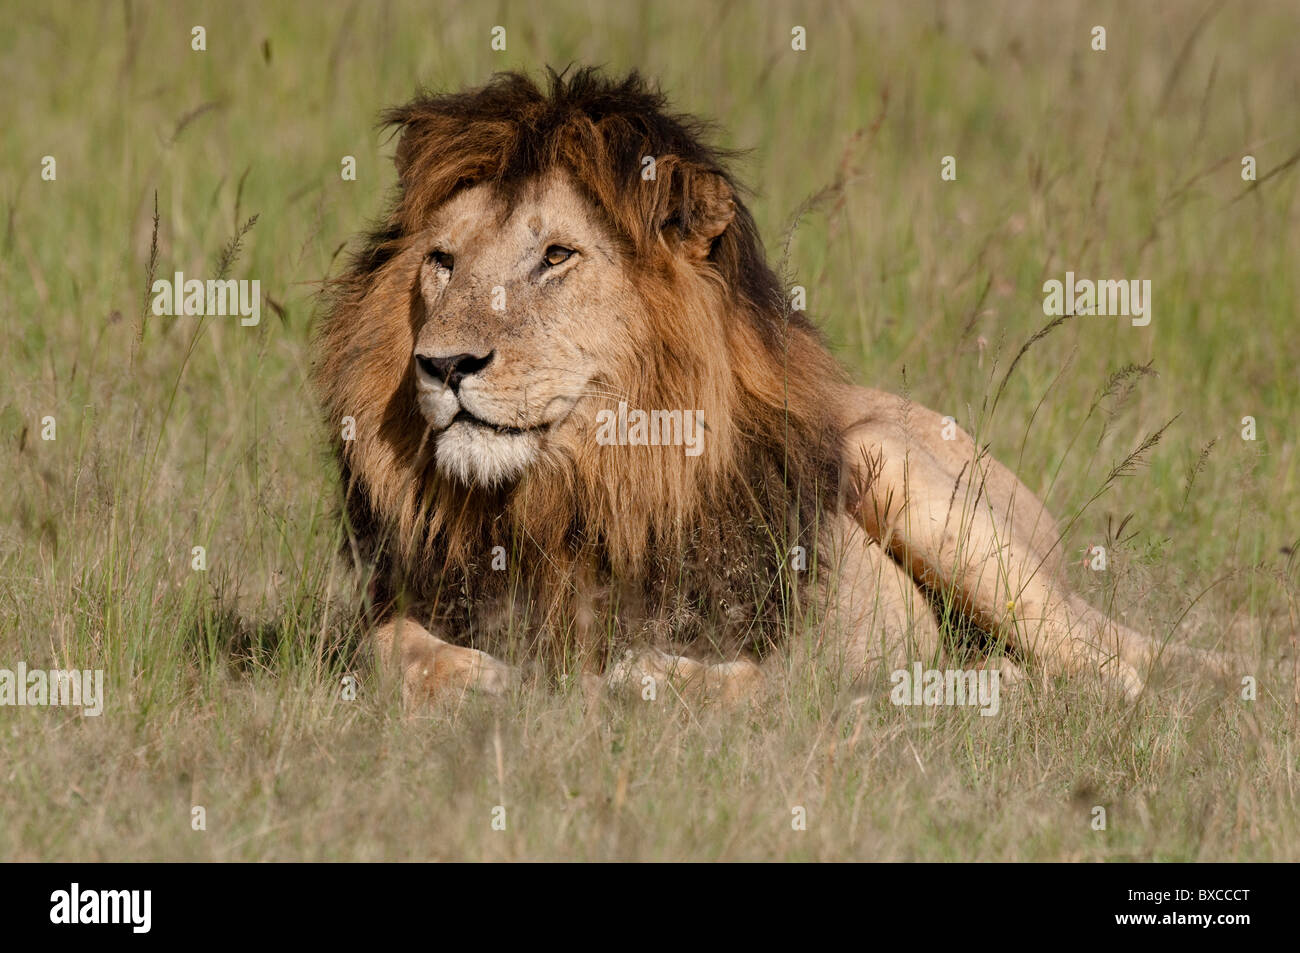 African Male Lion Stock Photo